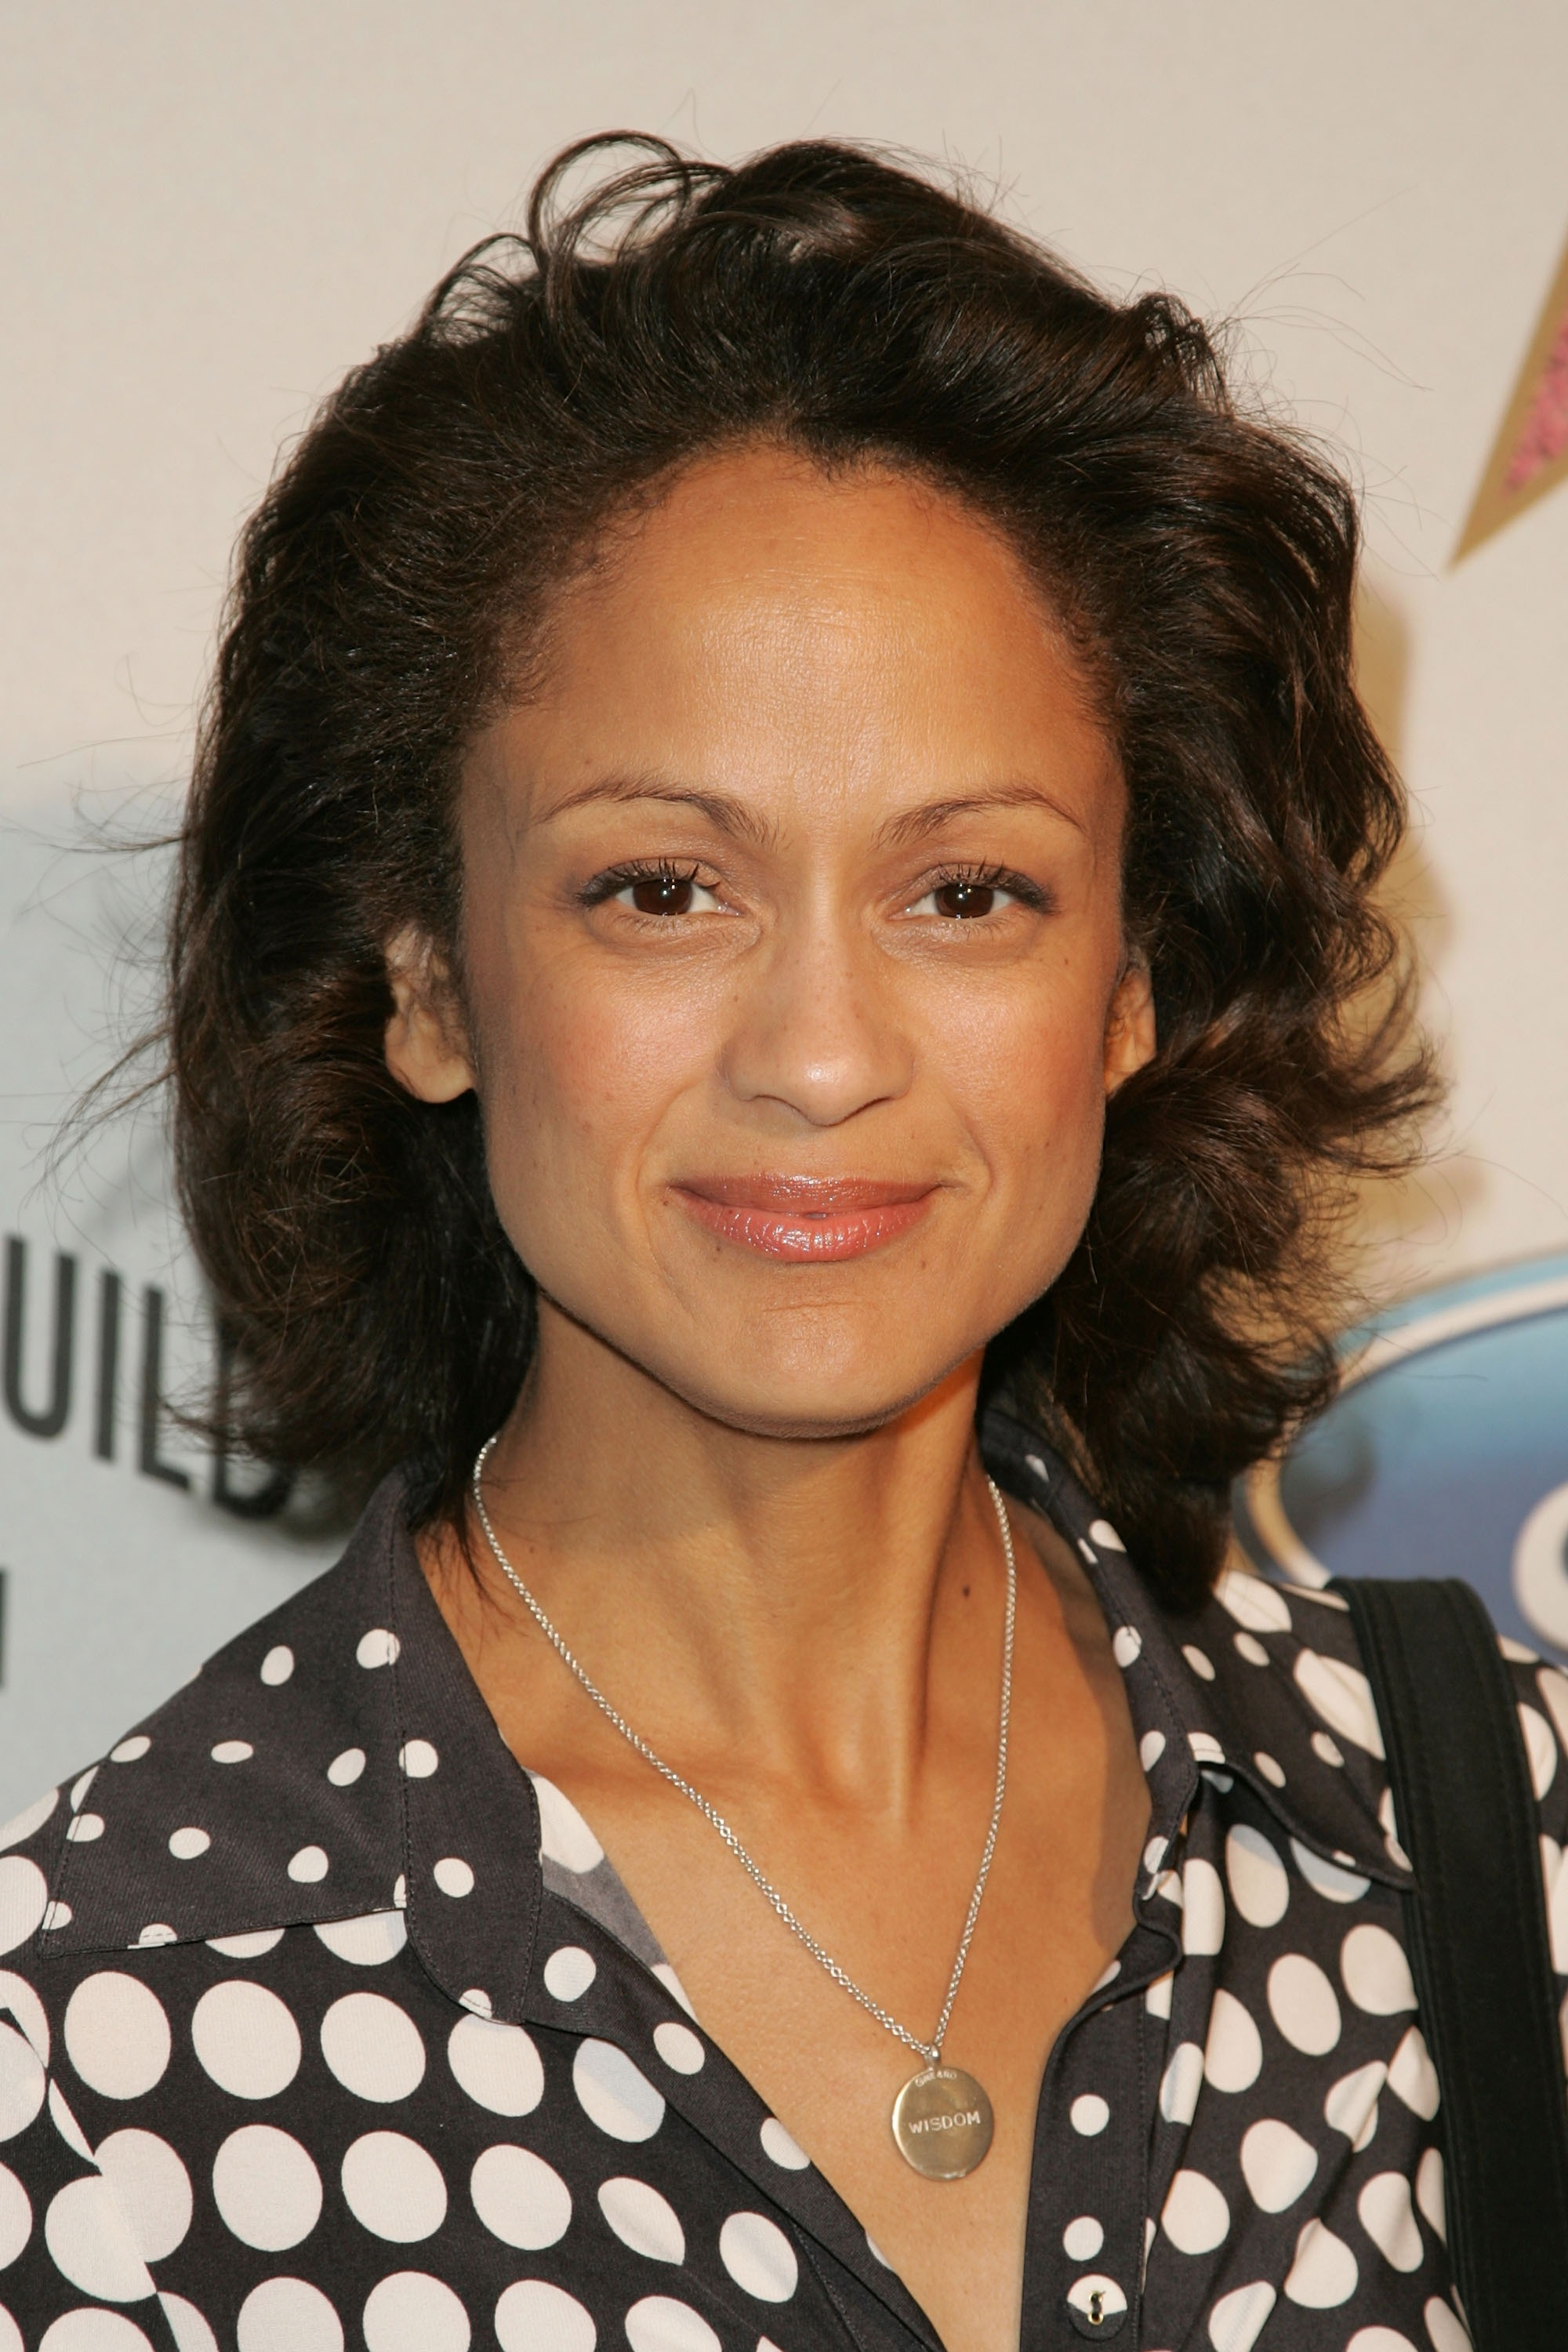 Anne-Marie Johnson nude (28 photo), Pussy, Bikini, Boobs, underwear 2015